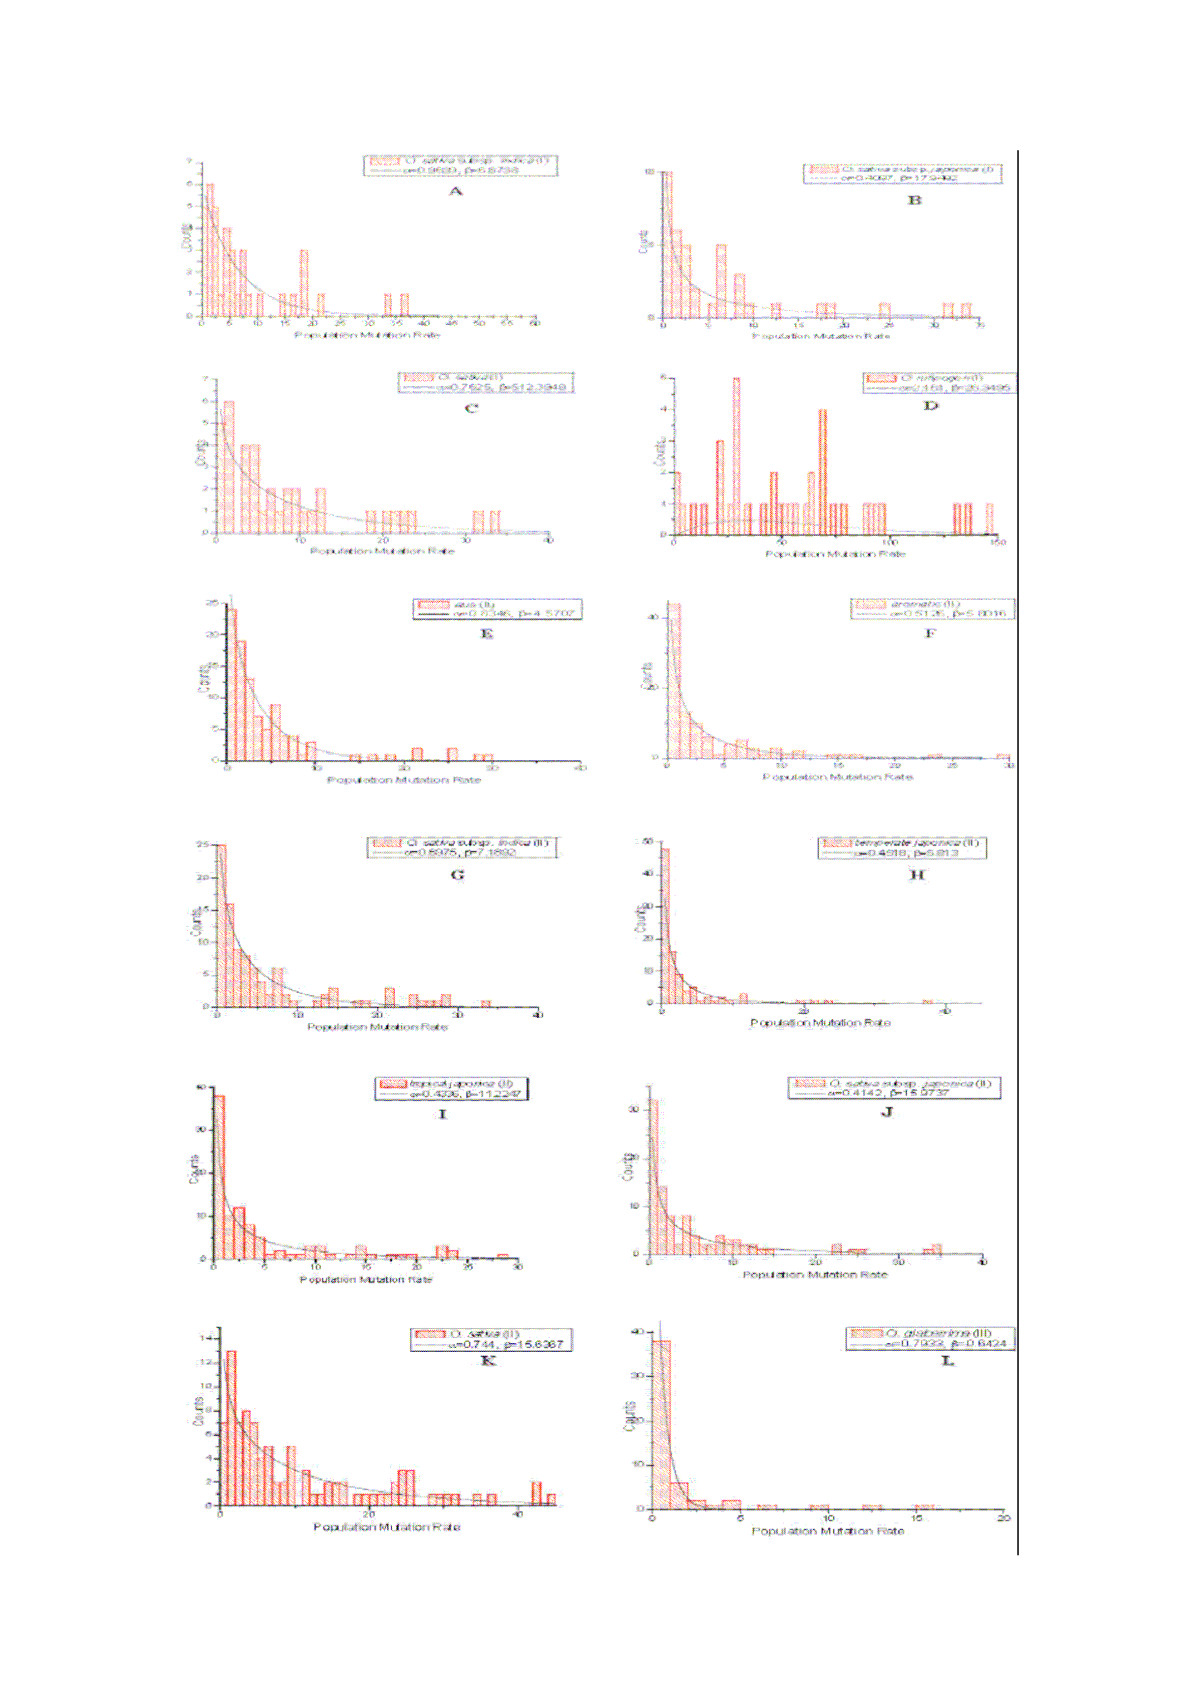 https://static-content.springer.com/image/art%3A10.1186%2F1471-2148-8-11/MediaObjects/12862_2006_Article_580_Fig2_HTML.jpg